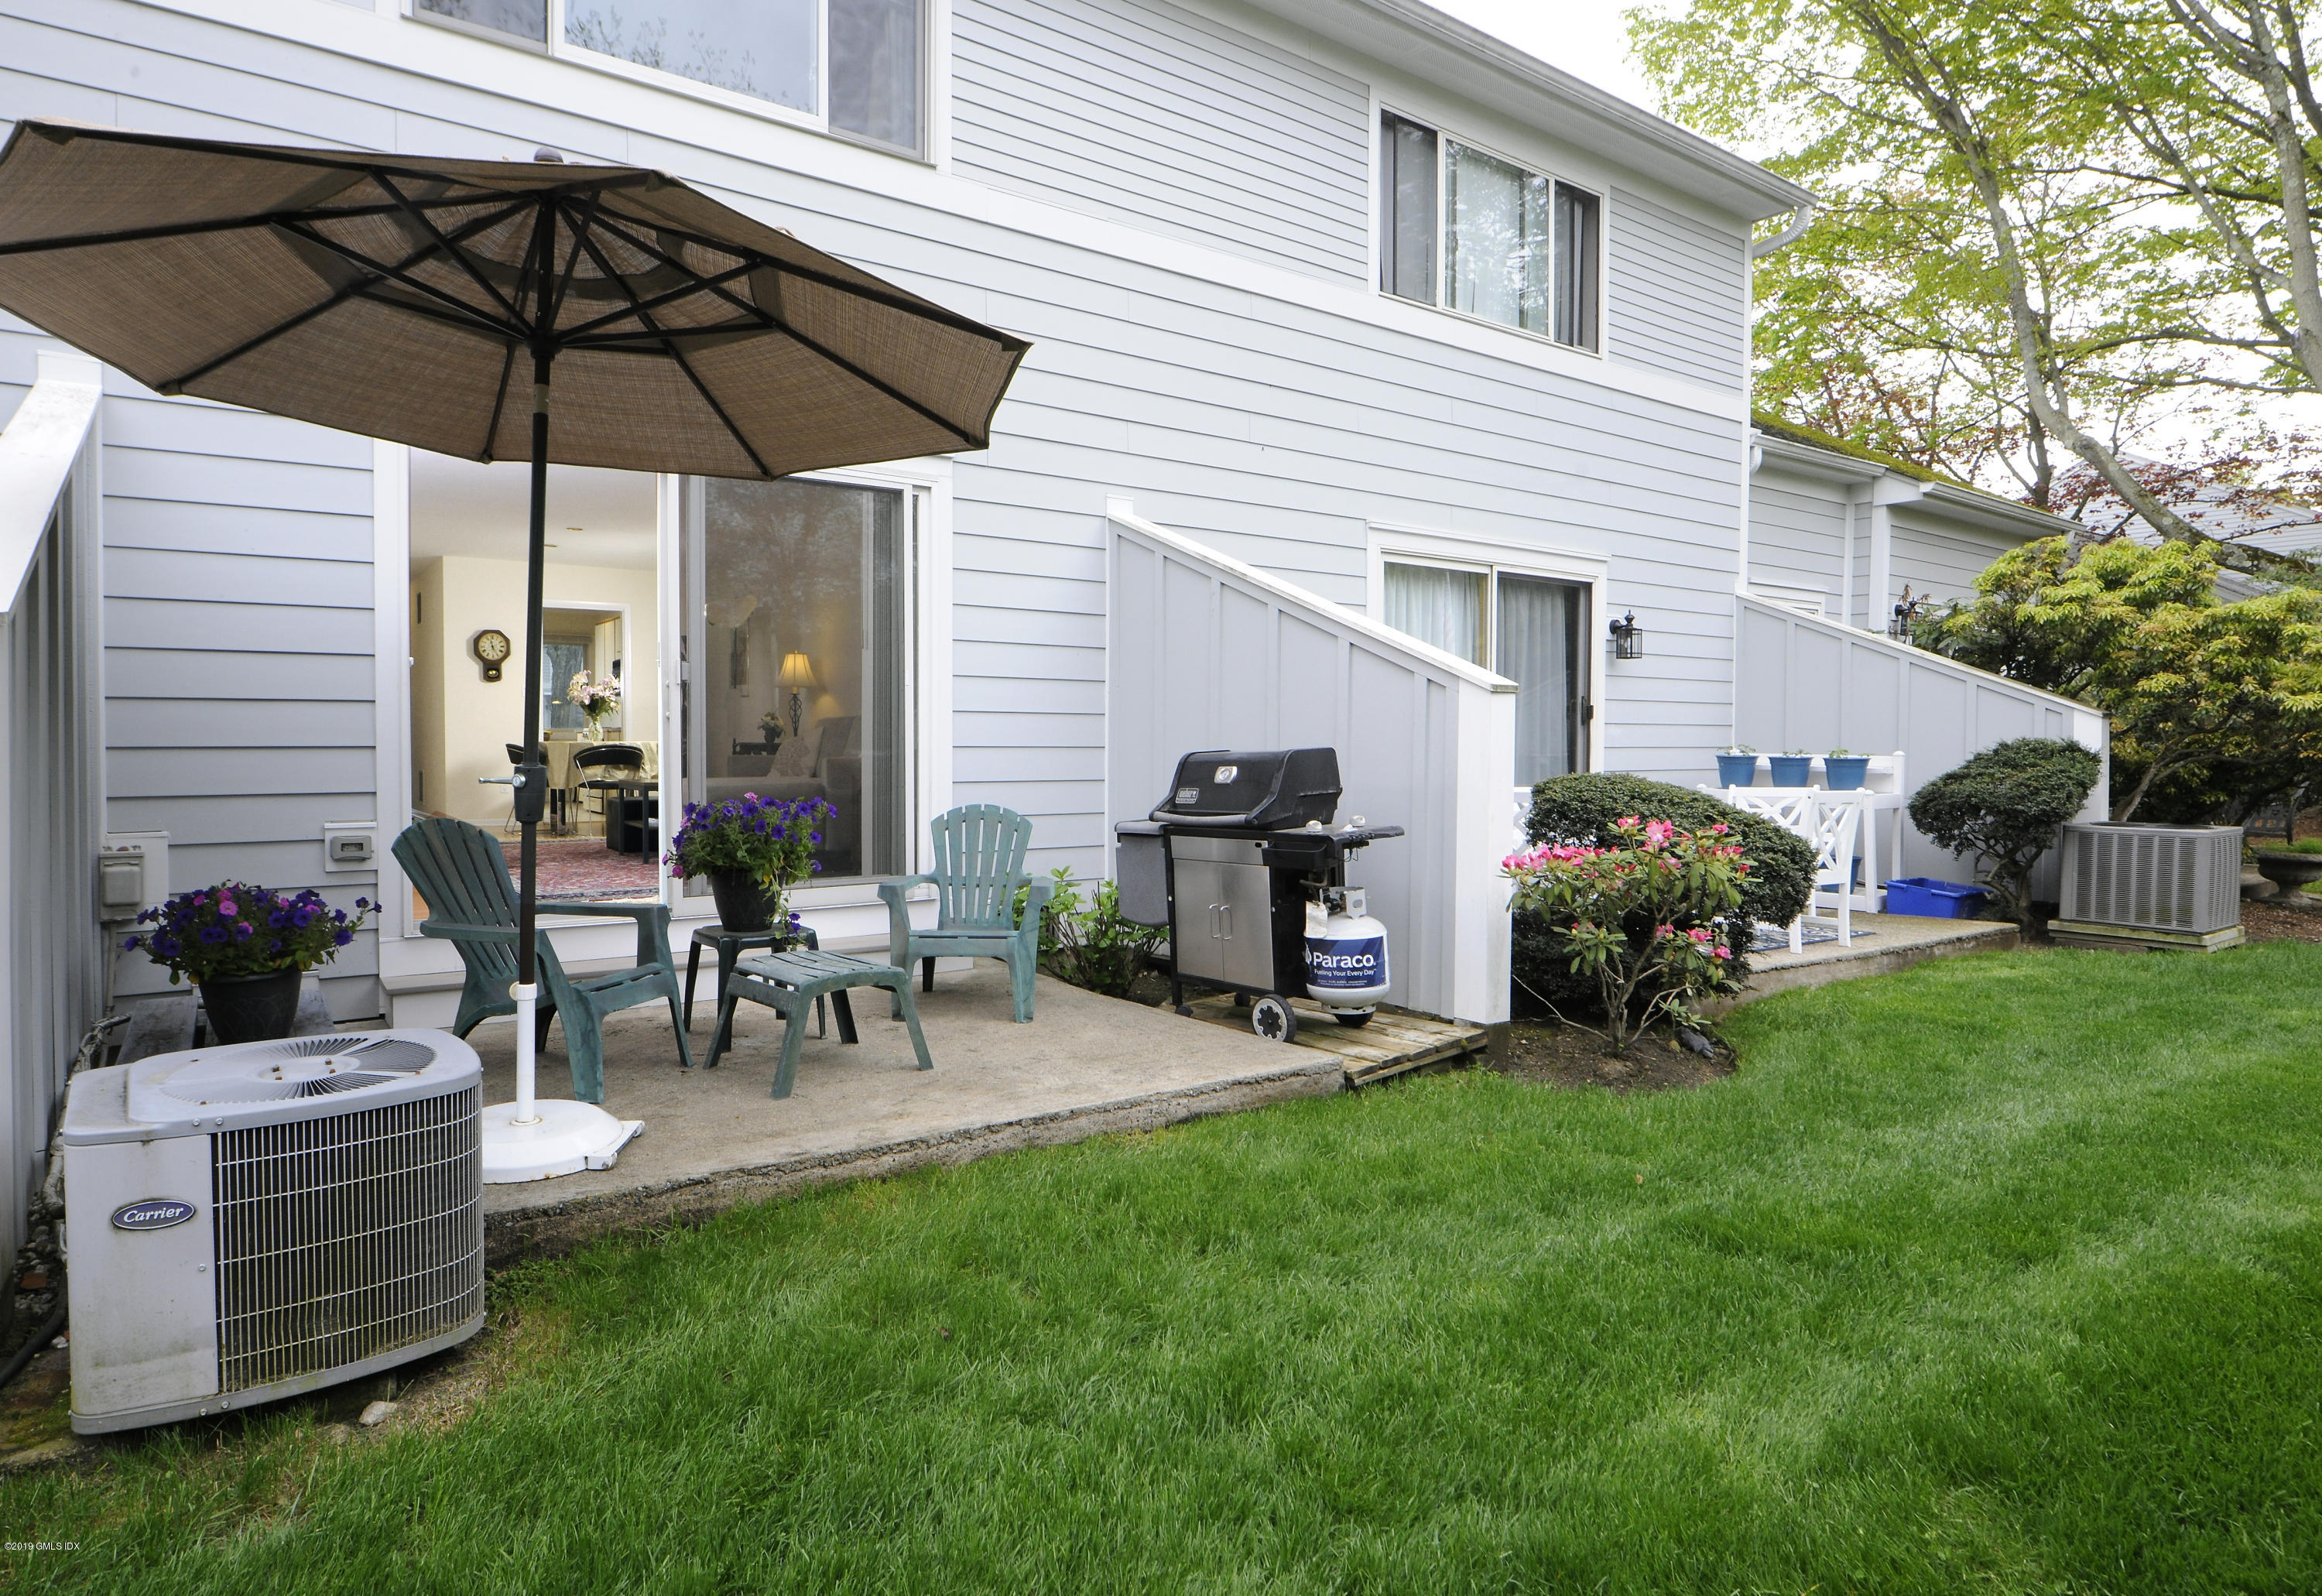 7 Whiffletree Way, #7, Riverside, CT 06878